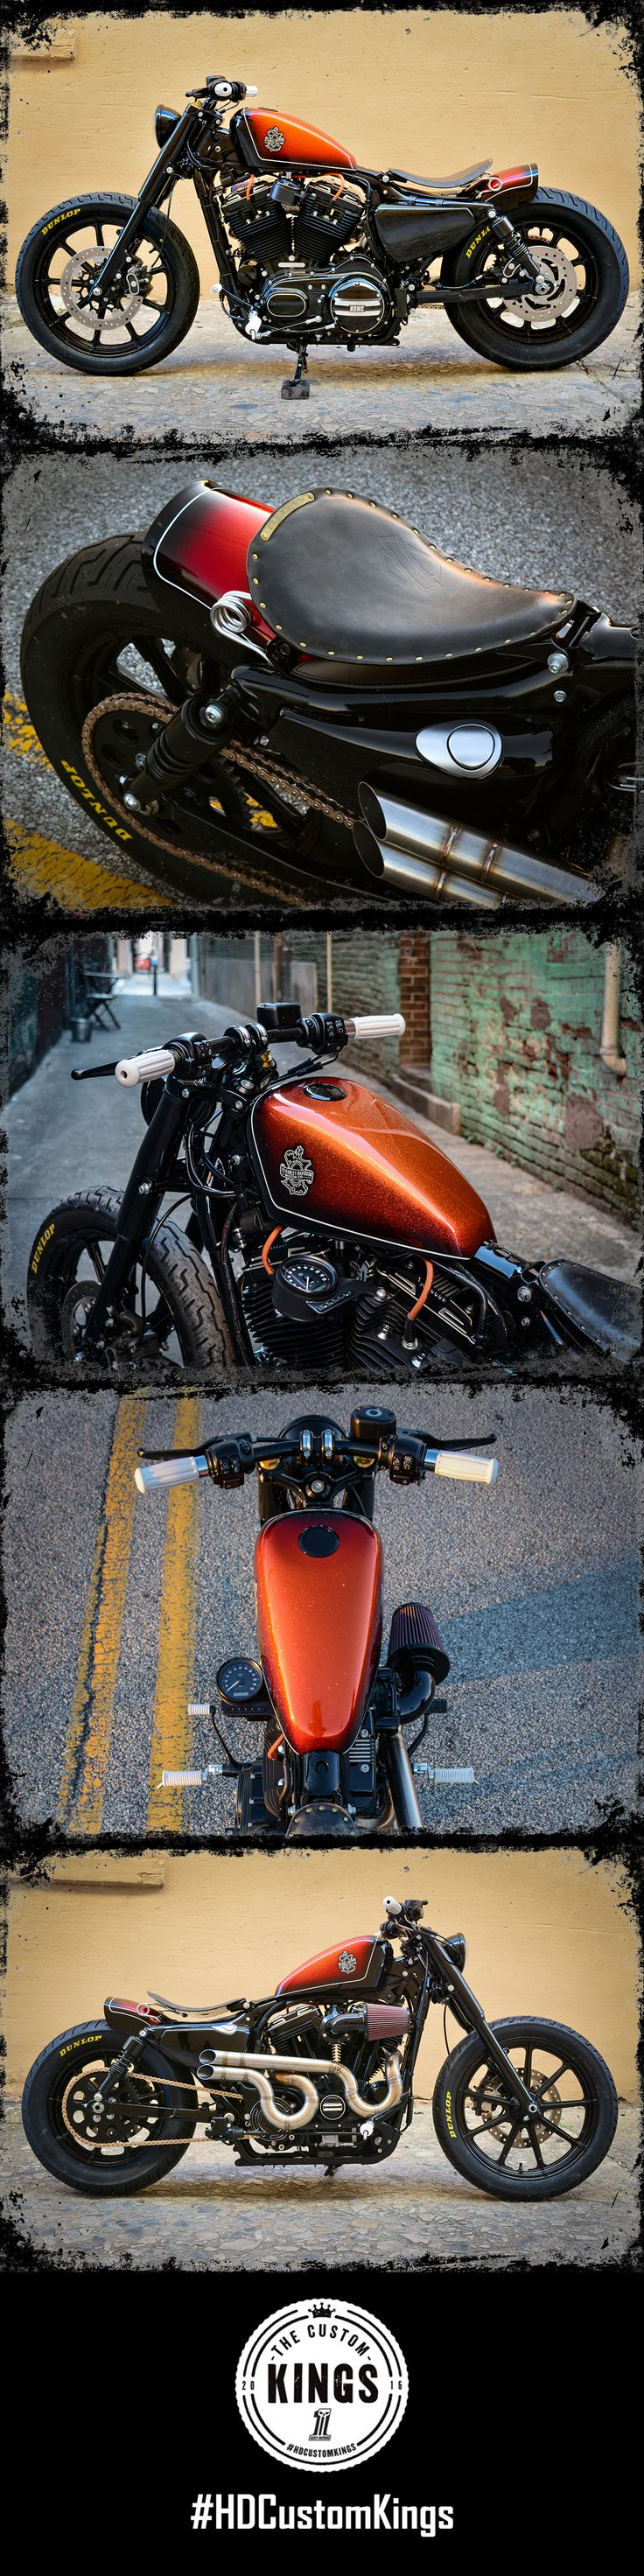 Macon H-D amplified the aggressive lines of the 2016 Iron 883 by chopping the frame, adding a custom rear fender, lowering the bike, and blacking it out with H-D parts & accessories. Vintage white controls and drag bars add a touch of nostalgia. | Harley-Davidson #HDCustomKings